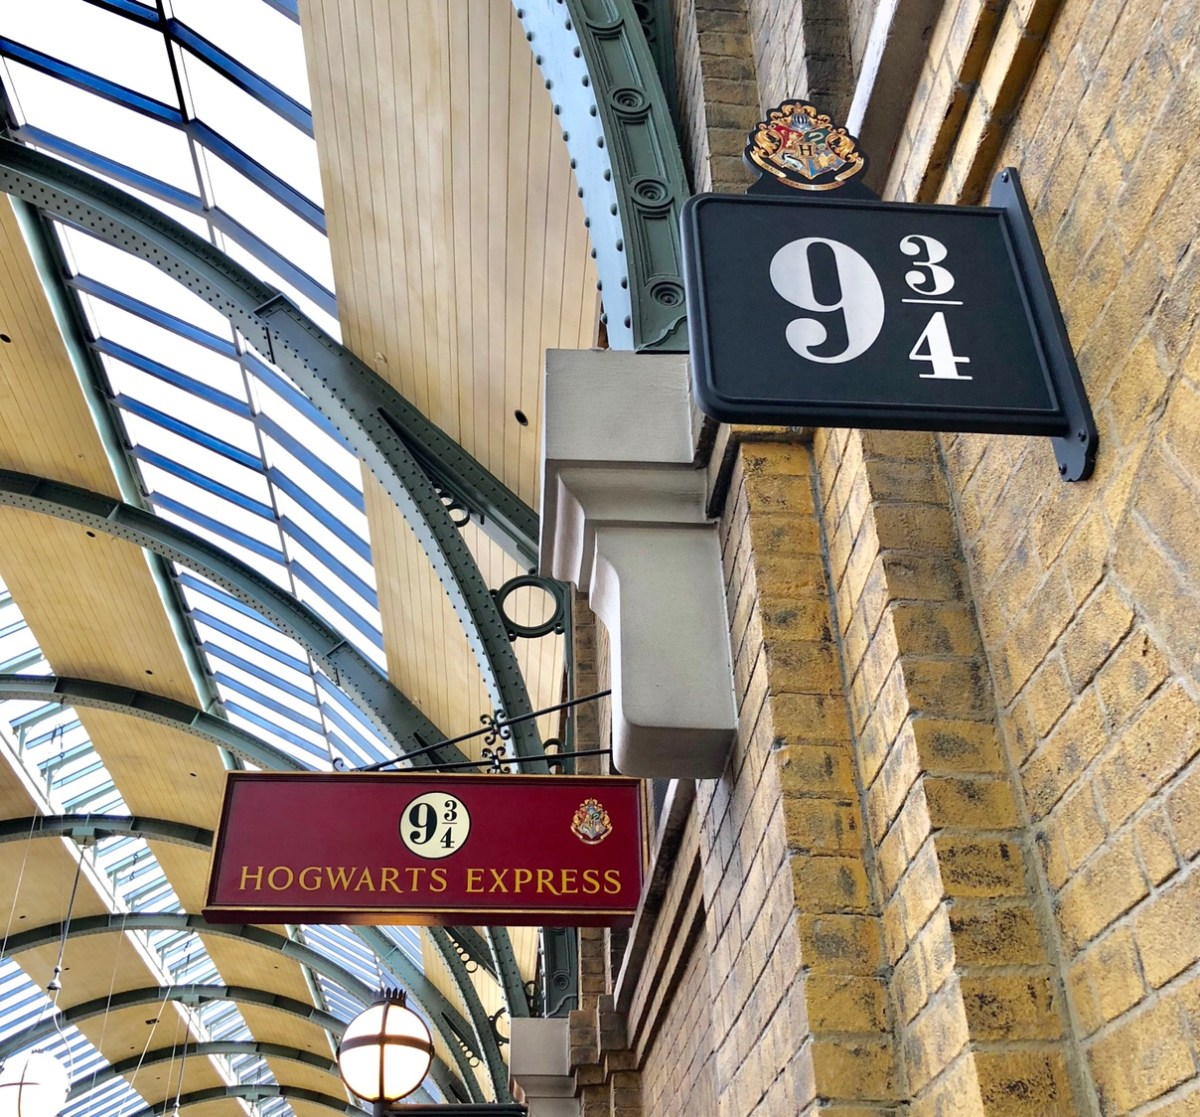 Platform 9-3/4 | Kings Cross Station #kingscross #harrypotter #harrypotterrides #universalorlando #hogwartsexpress